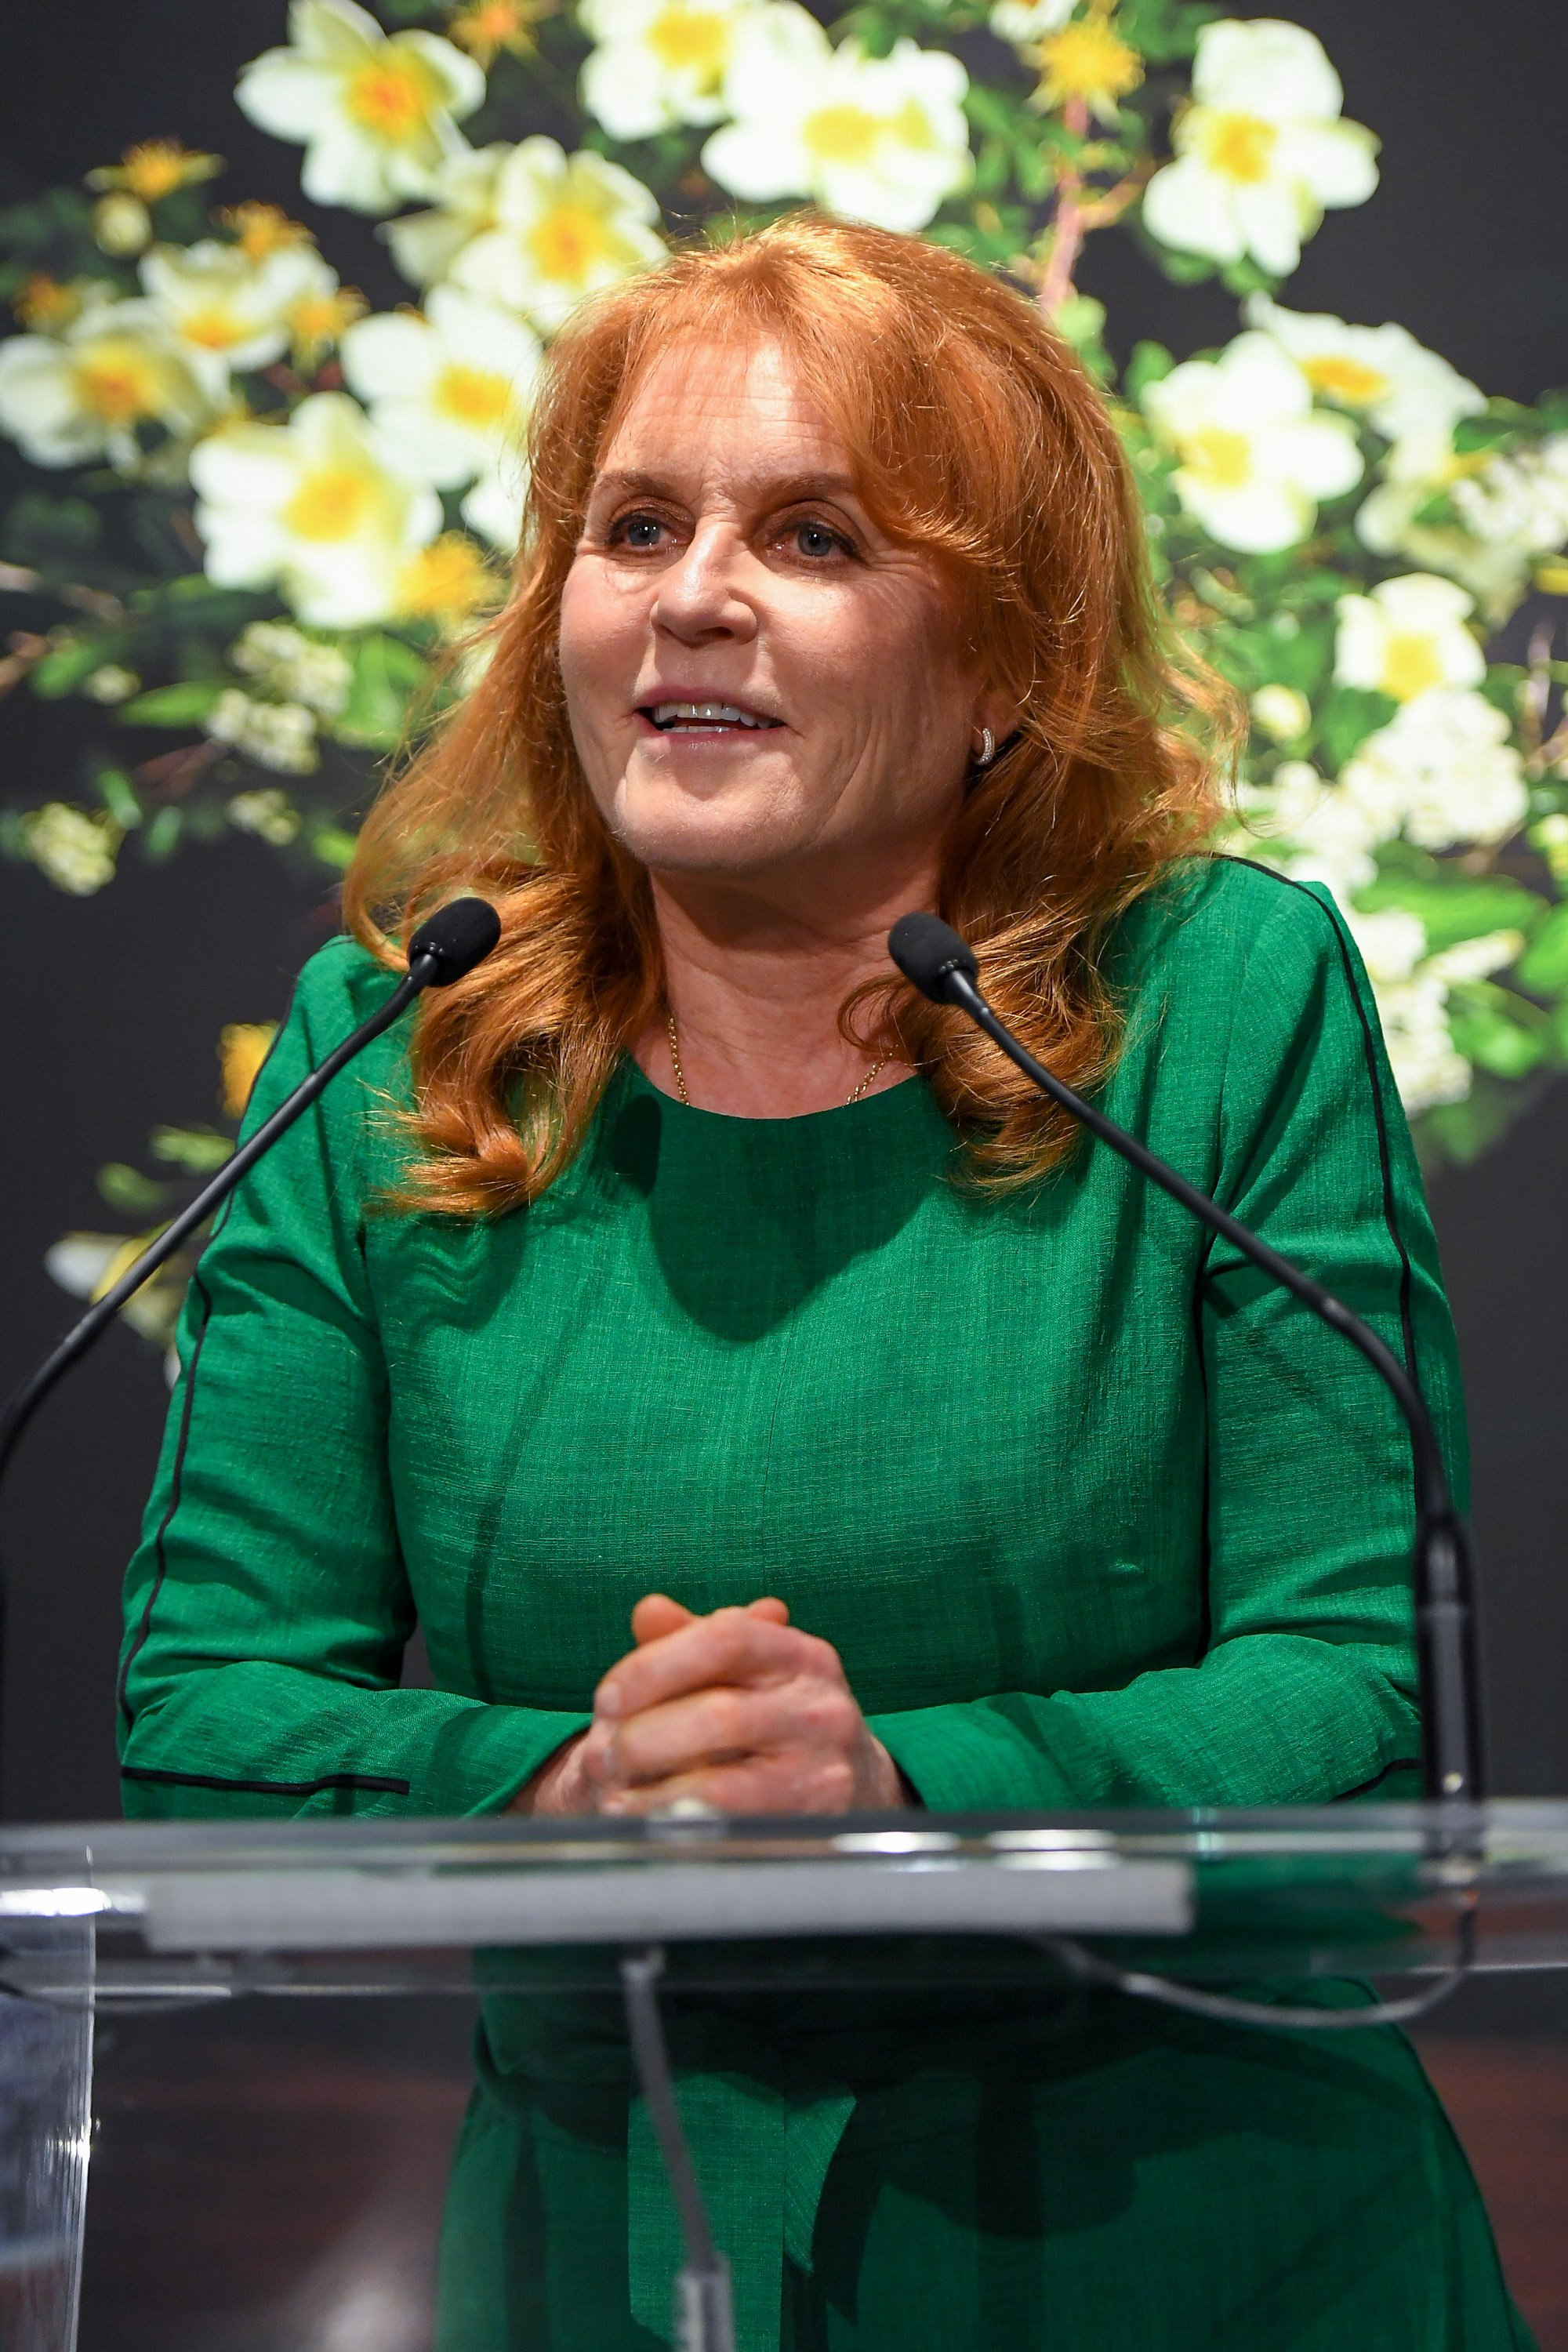 """Duchess of York, Sarah Ferguson attends the T.M. Glass Solo Exhibition """"The Audible Language Of Flowers"""" Opening at Onsite Gallery on May 08, 2019 in Toronto, Canada. 